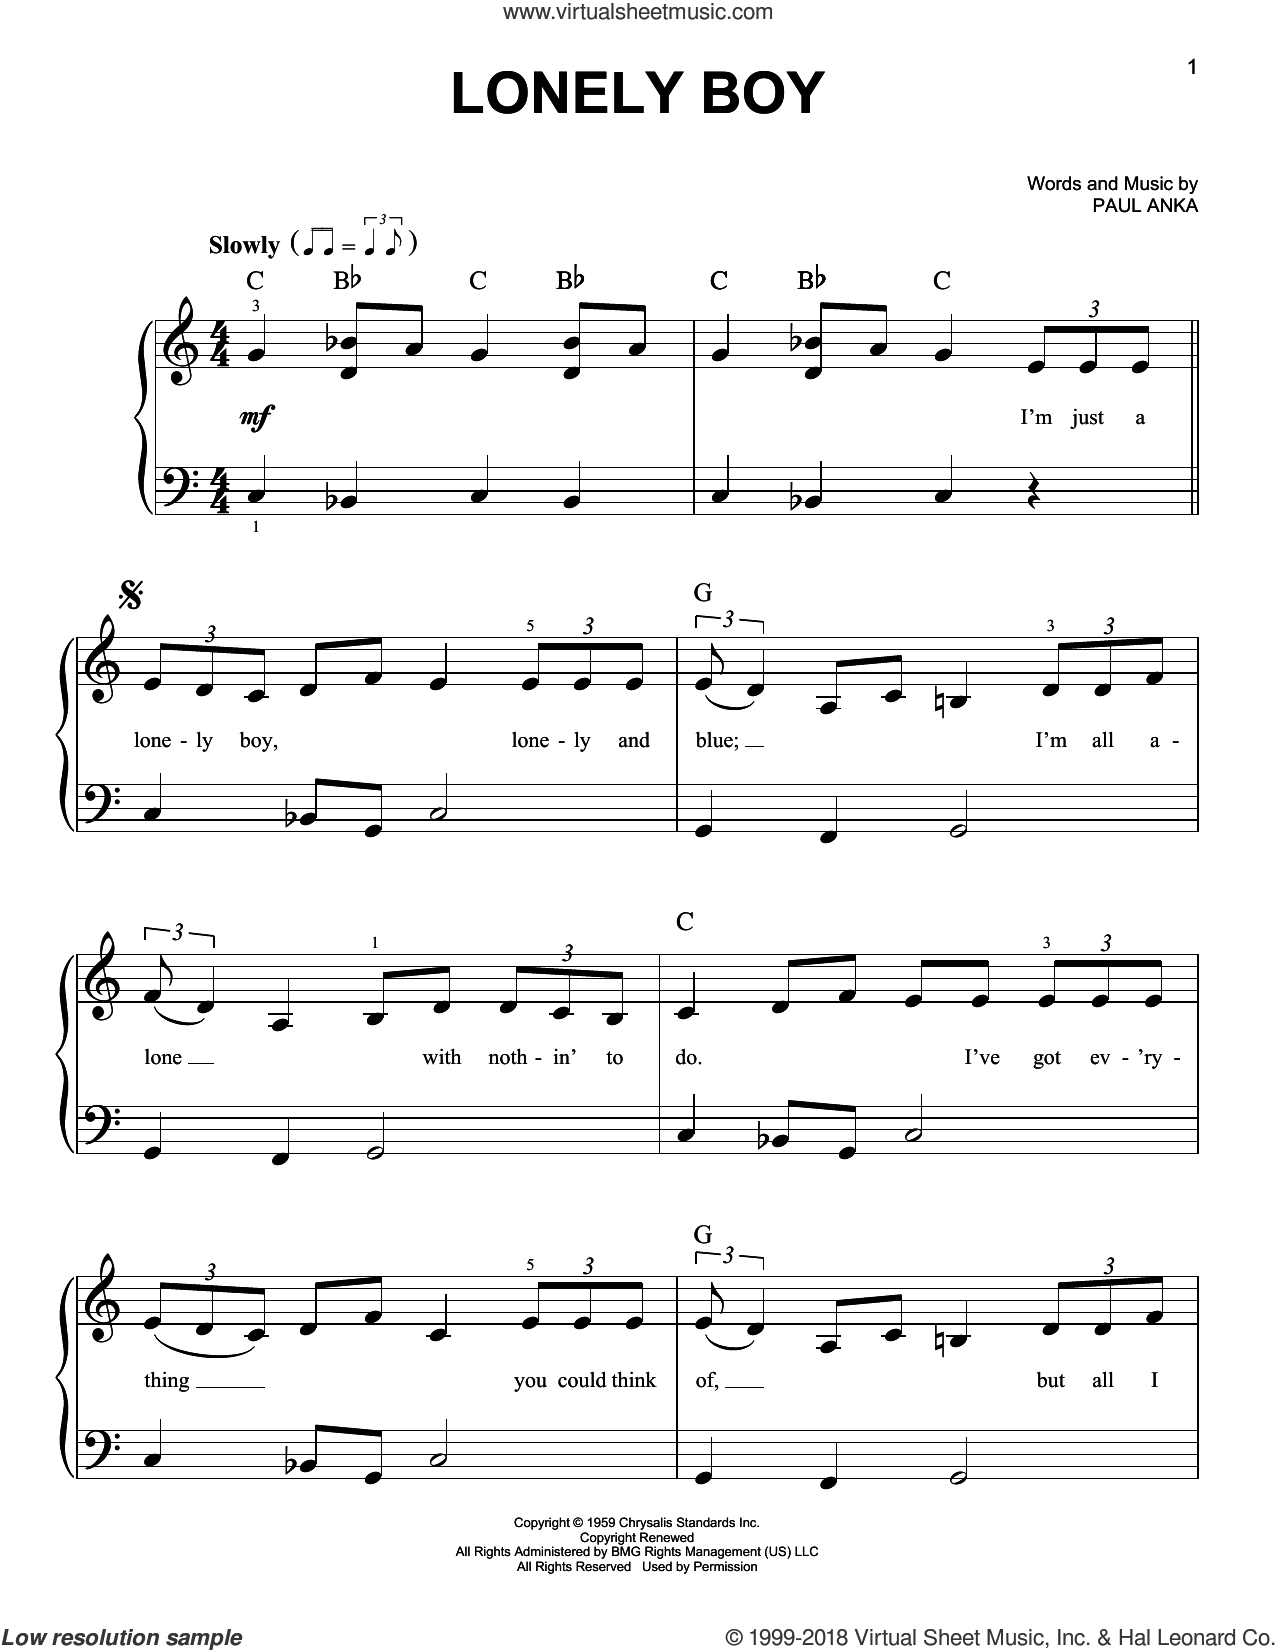 Lonely Boy sheet music for piano solo by Paul Anka